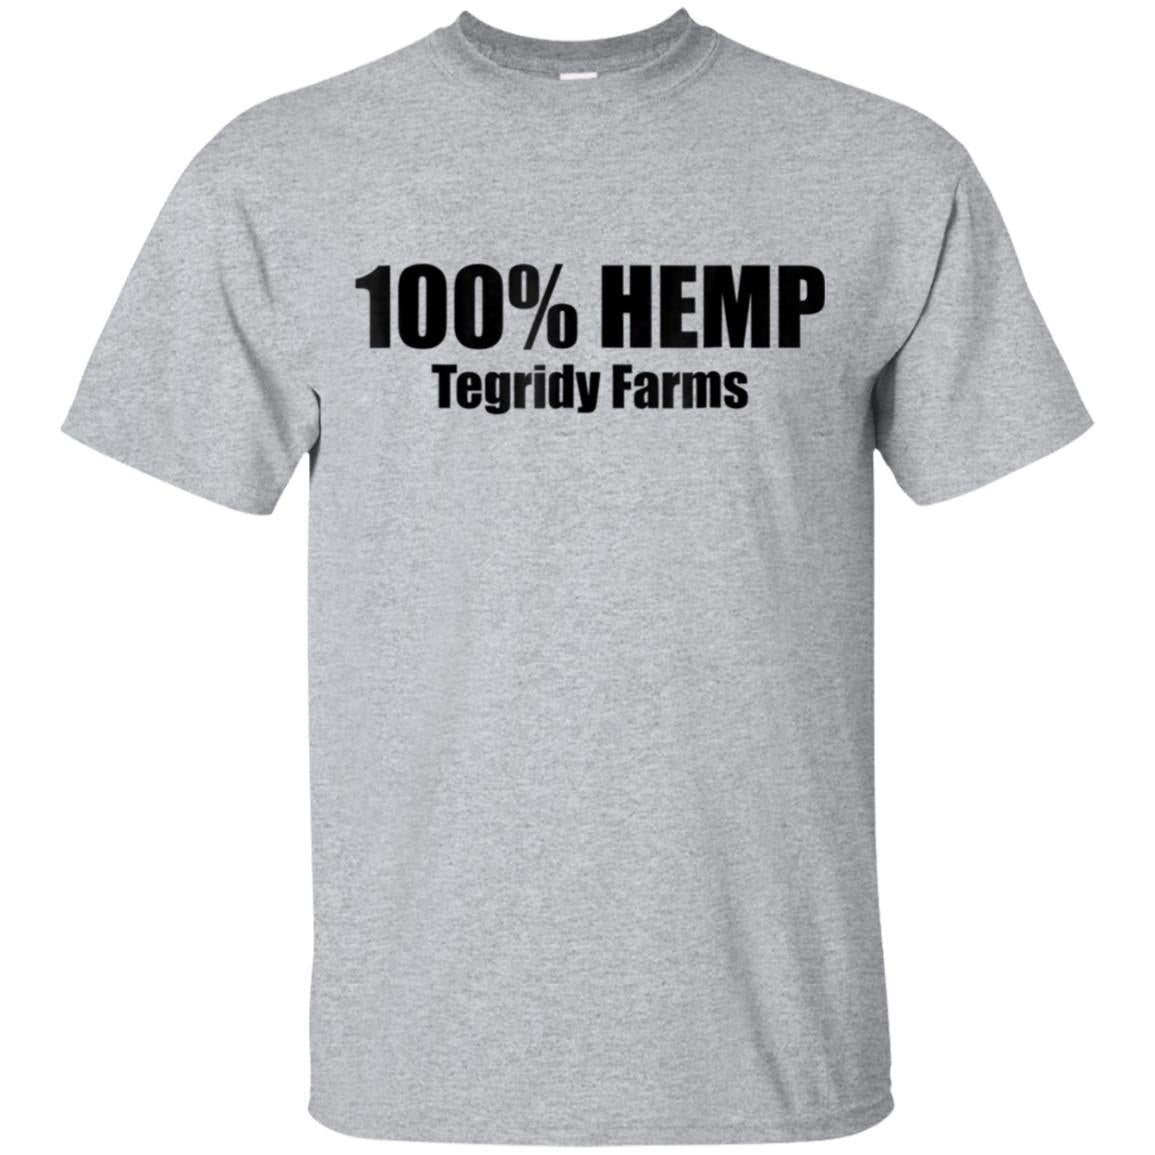 Tegridy Farms T-Shirt 99promocode